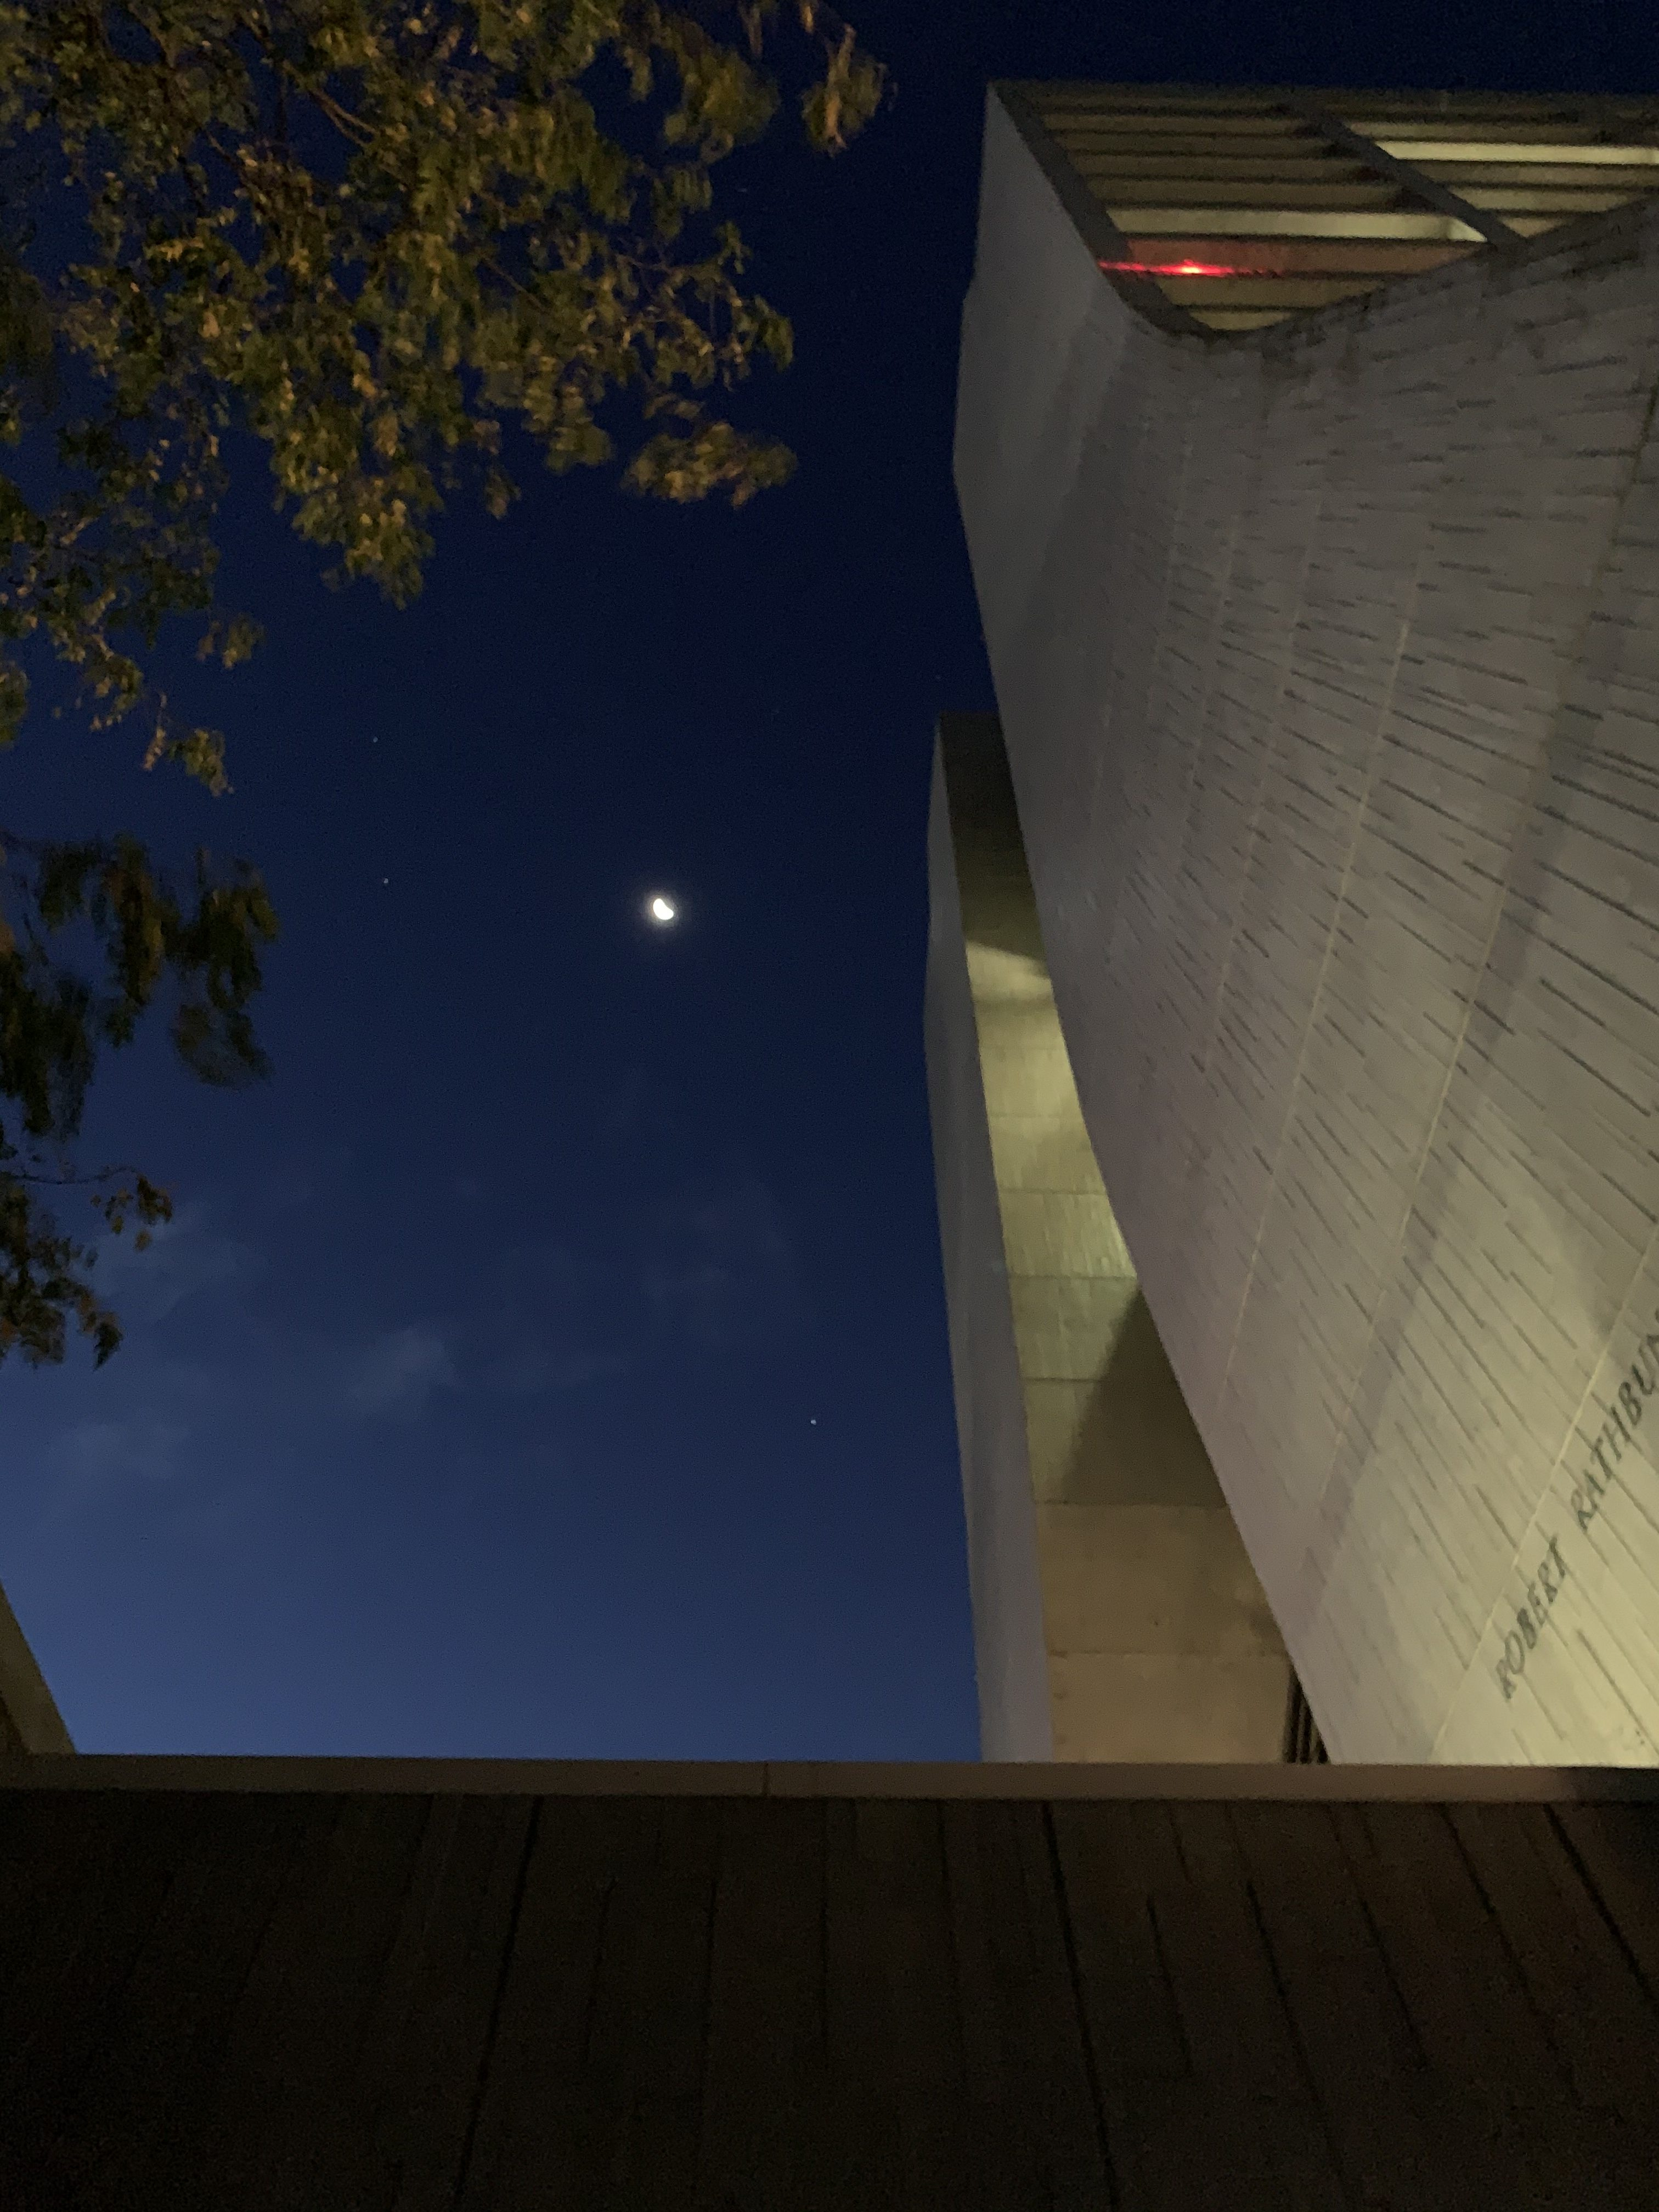 The early morning sky of Sept. 23 peacefully greets you as you enter Wilson Hall. sky, moon, building, Wilson Hall, nature Photo: Josh Juneau